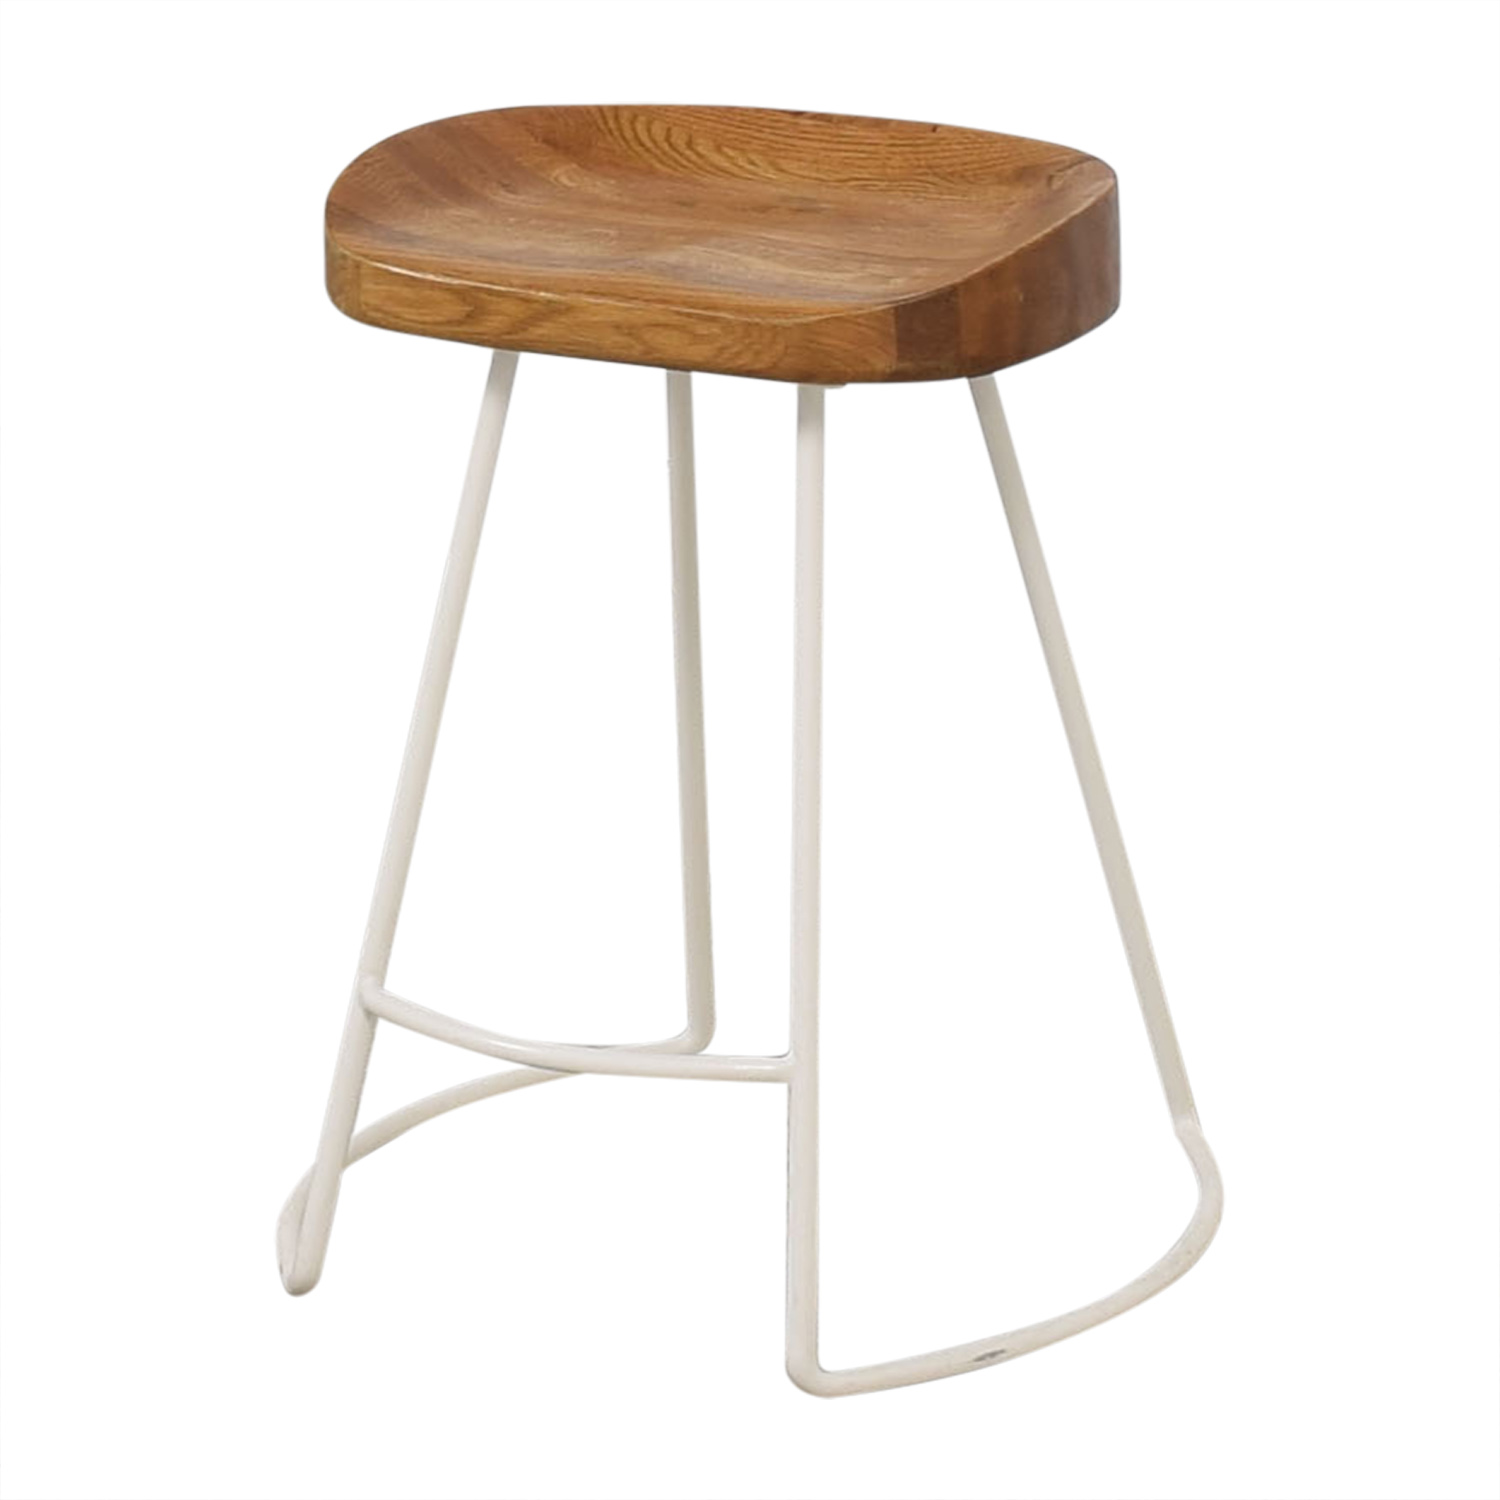 buy Wisteria Wisteria Natural Smart and Sleek Counter Stools online